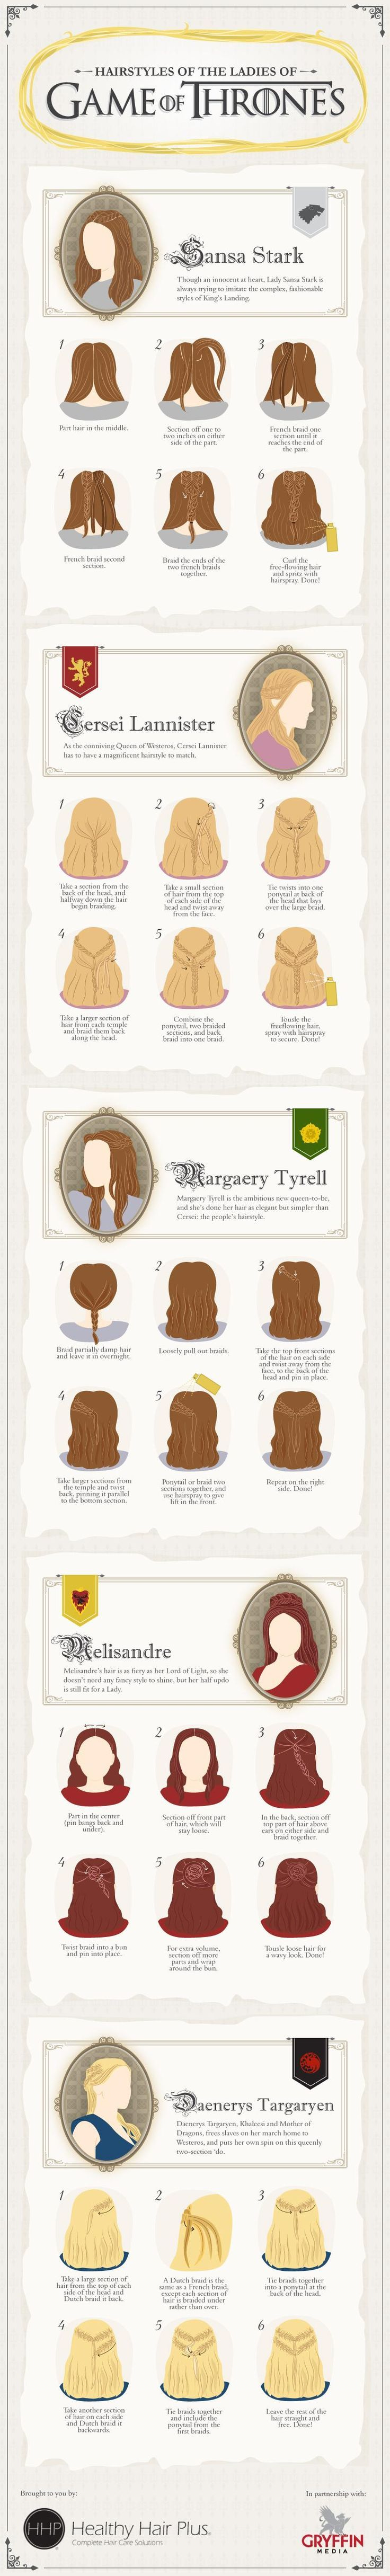 HAIR STYLES OF THE LADIES OF GAME OF THRONES nerdiness